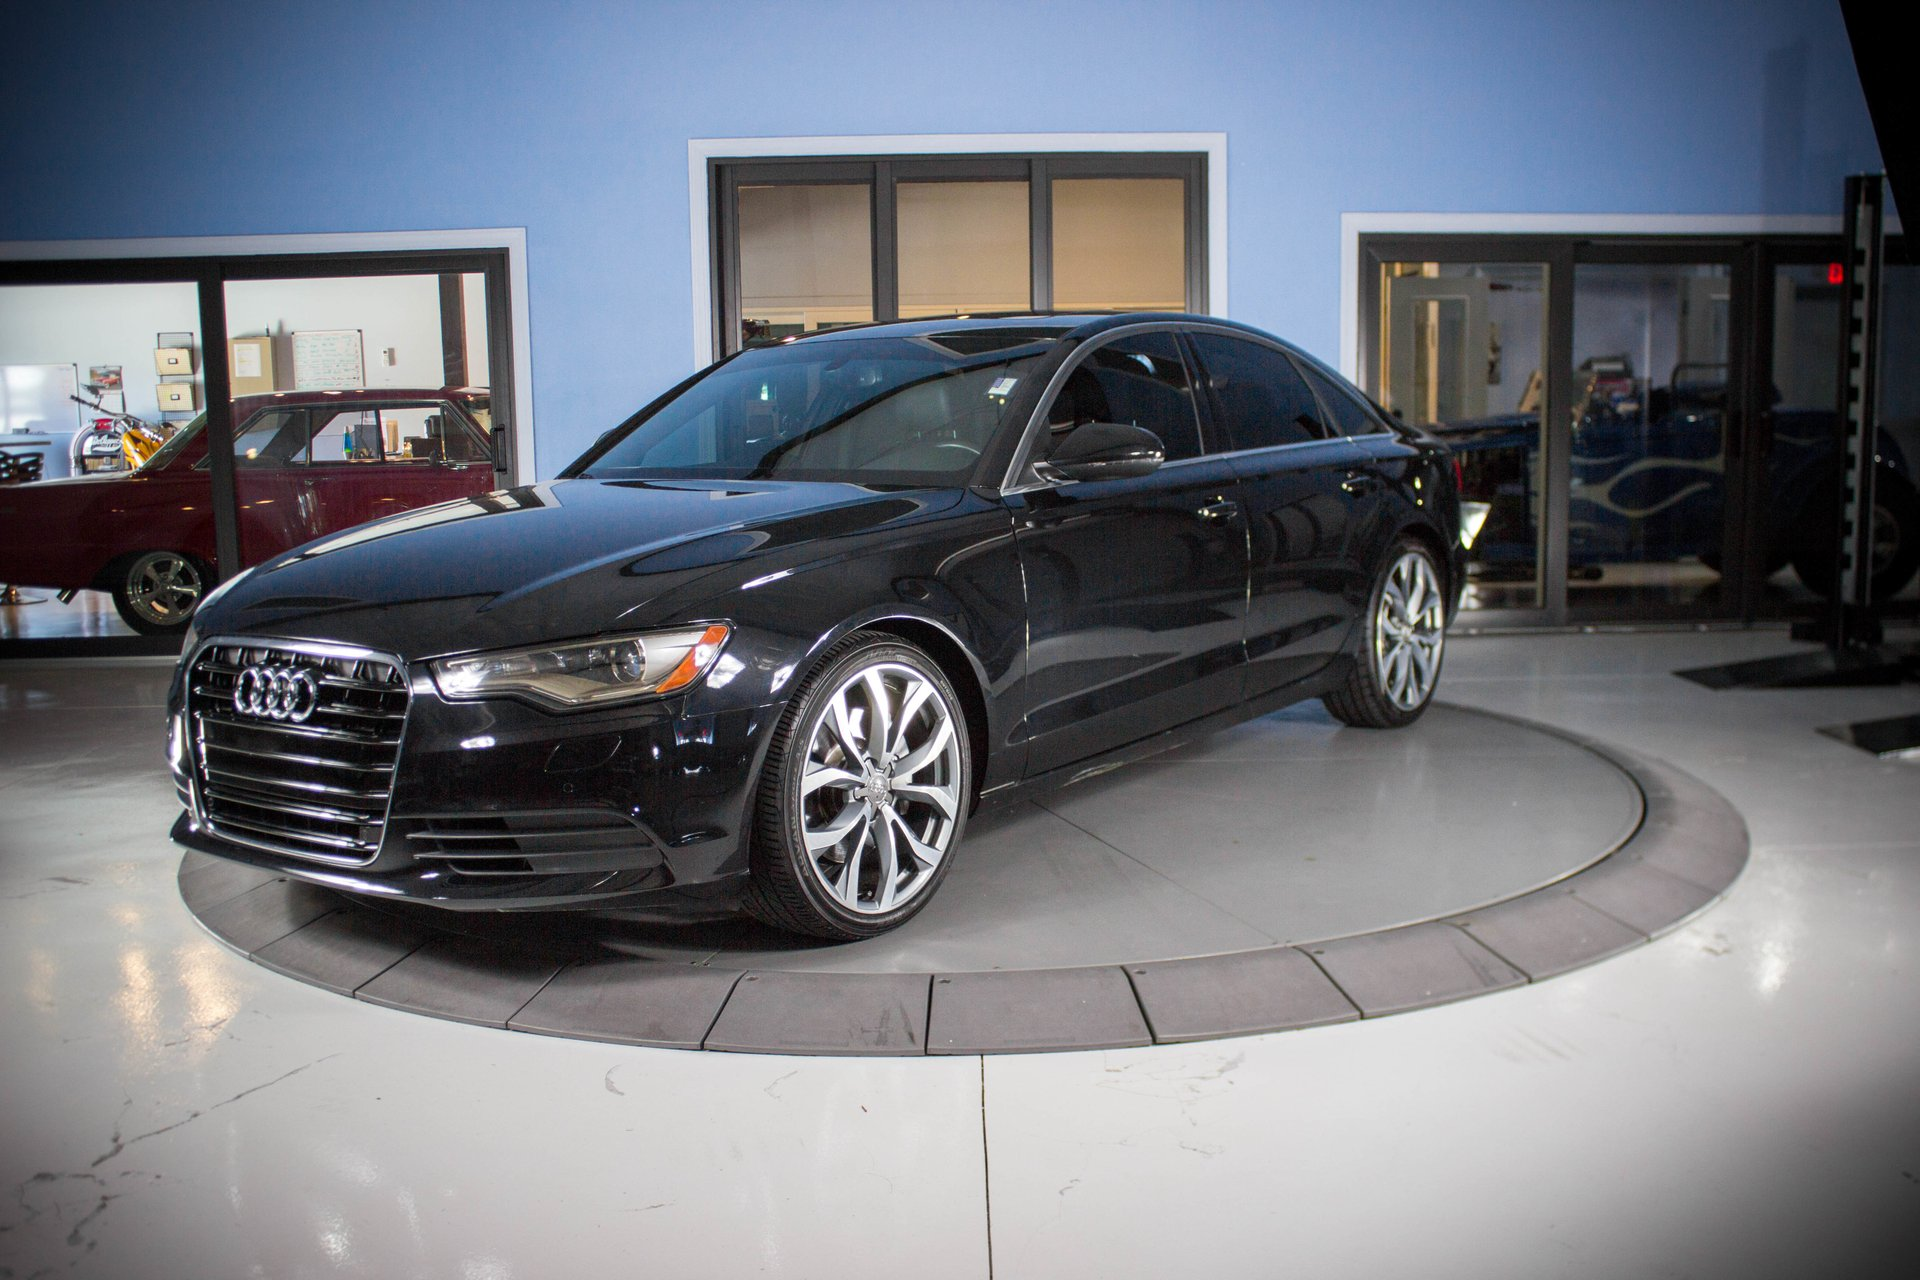 2014 audi a6 classic cars used cars for sale in tampa fl. Black Bedroom Furniture Sets. Home Design Ideas